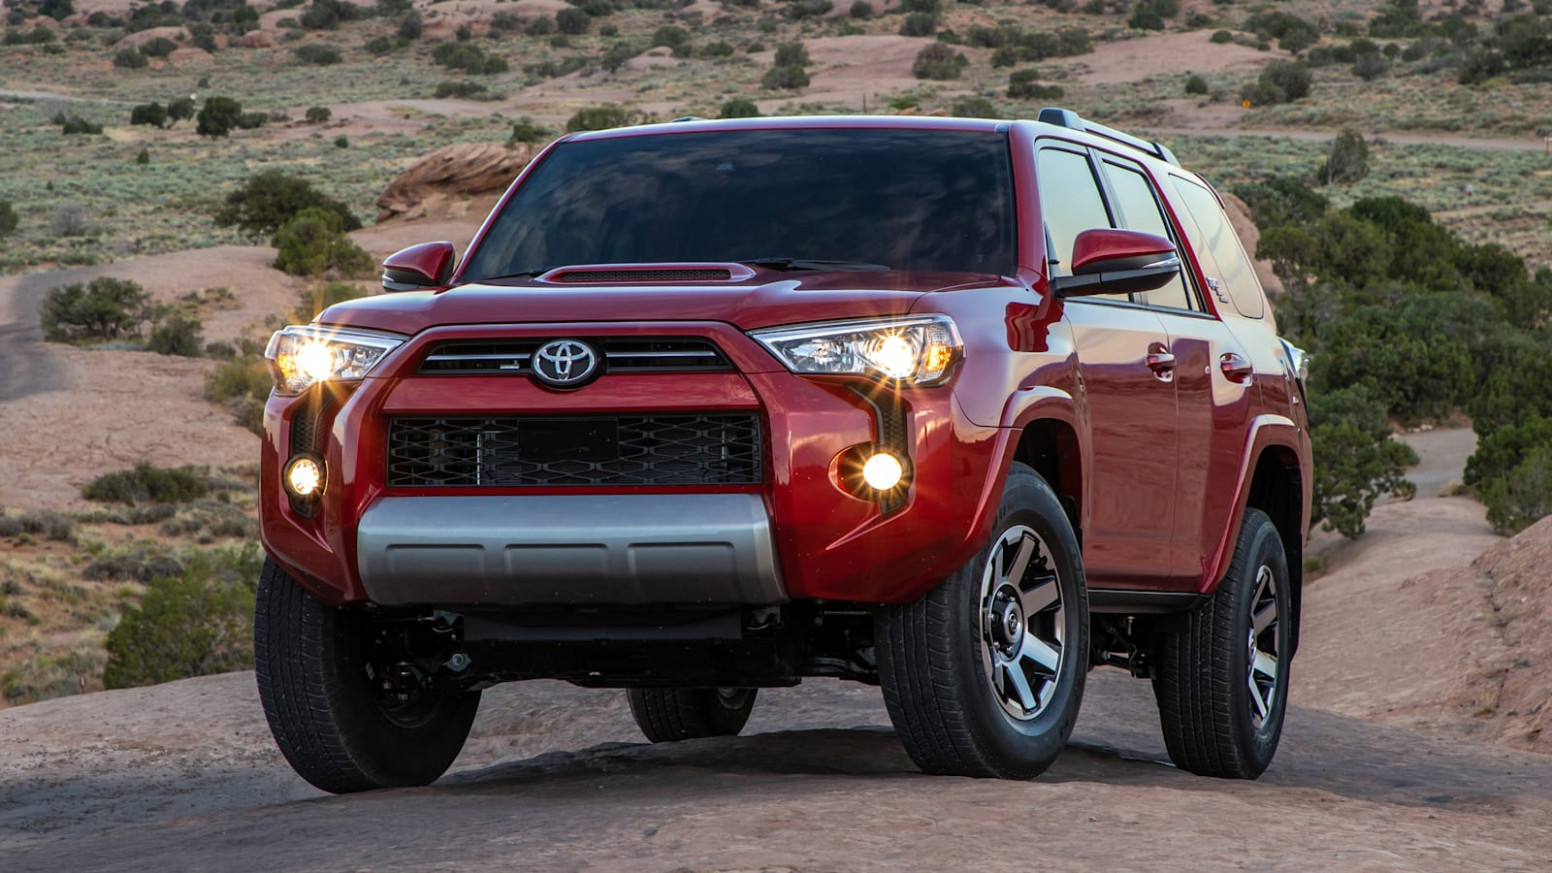 6 Toyota 6Runner TRD Off Road Premium 6dr 6x6 Pricing and Options